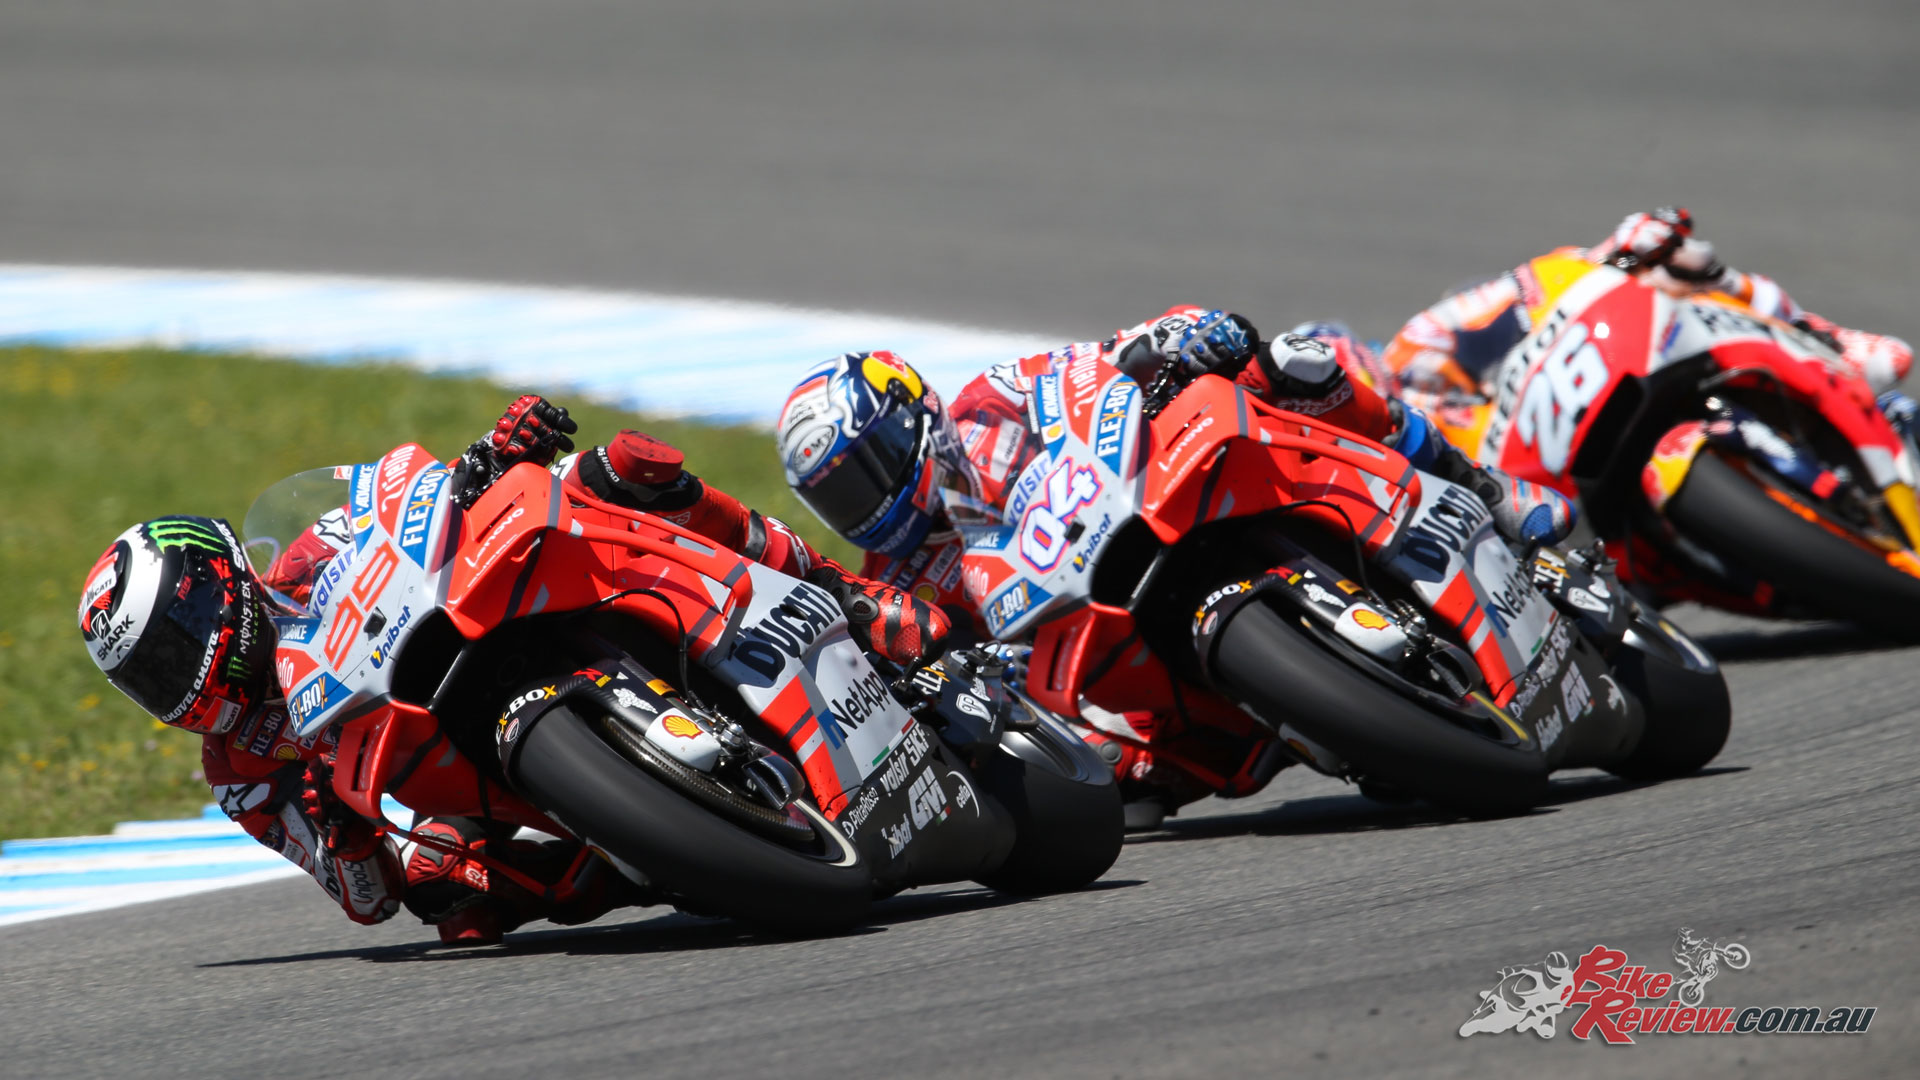 It was a rough weekend for Lorenzo, Dovizioso and Pedrosa, all crashing out in one fel swoop